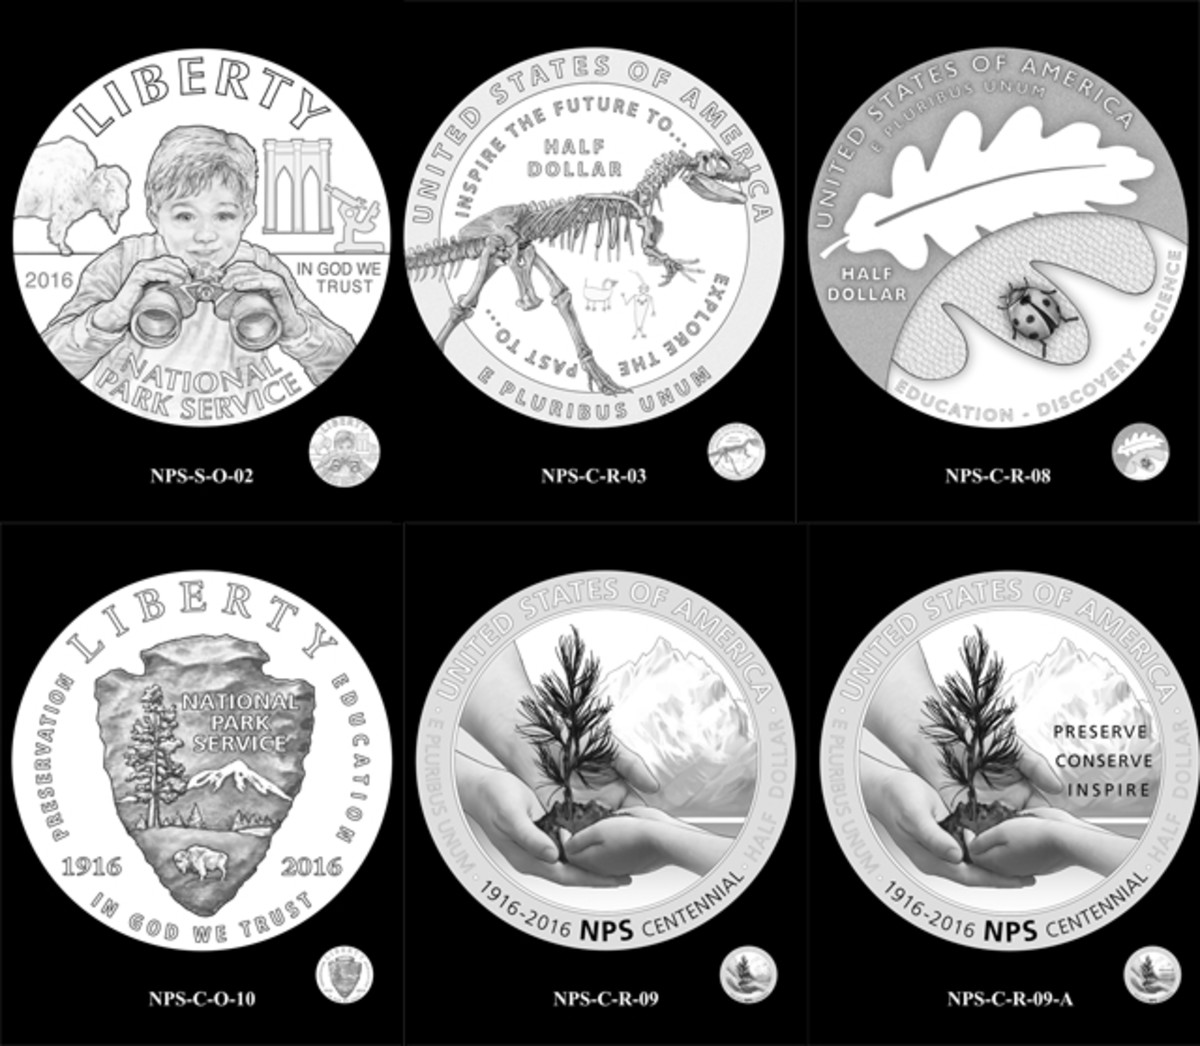 Designs the CCAC discussed for the National Park Service clad half dollar coin. They ended up choosing obverse number 5 and reverse number 3.